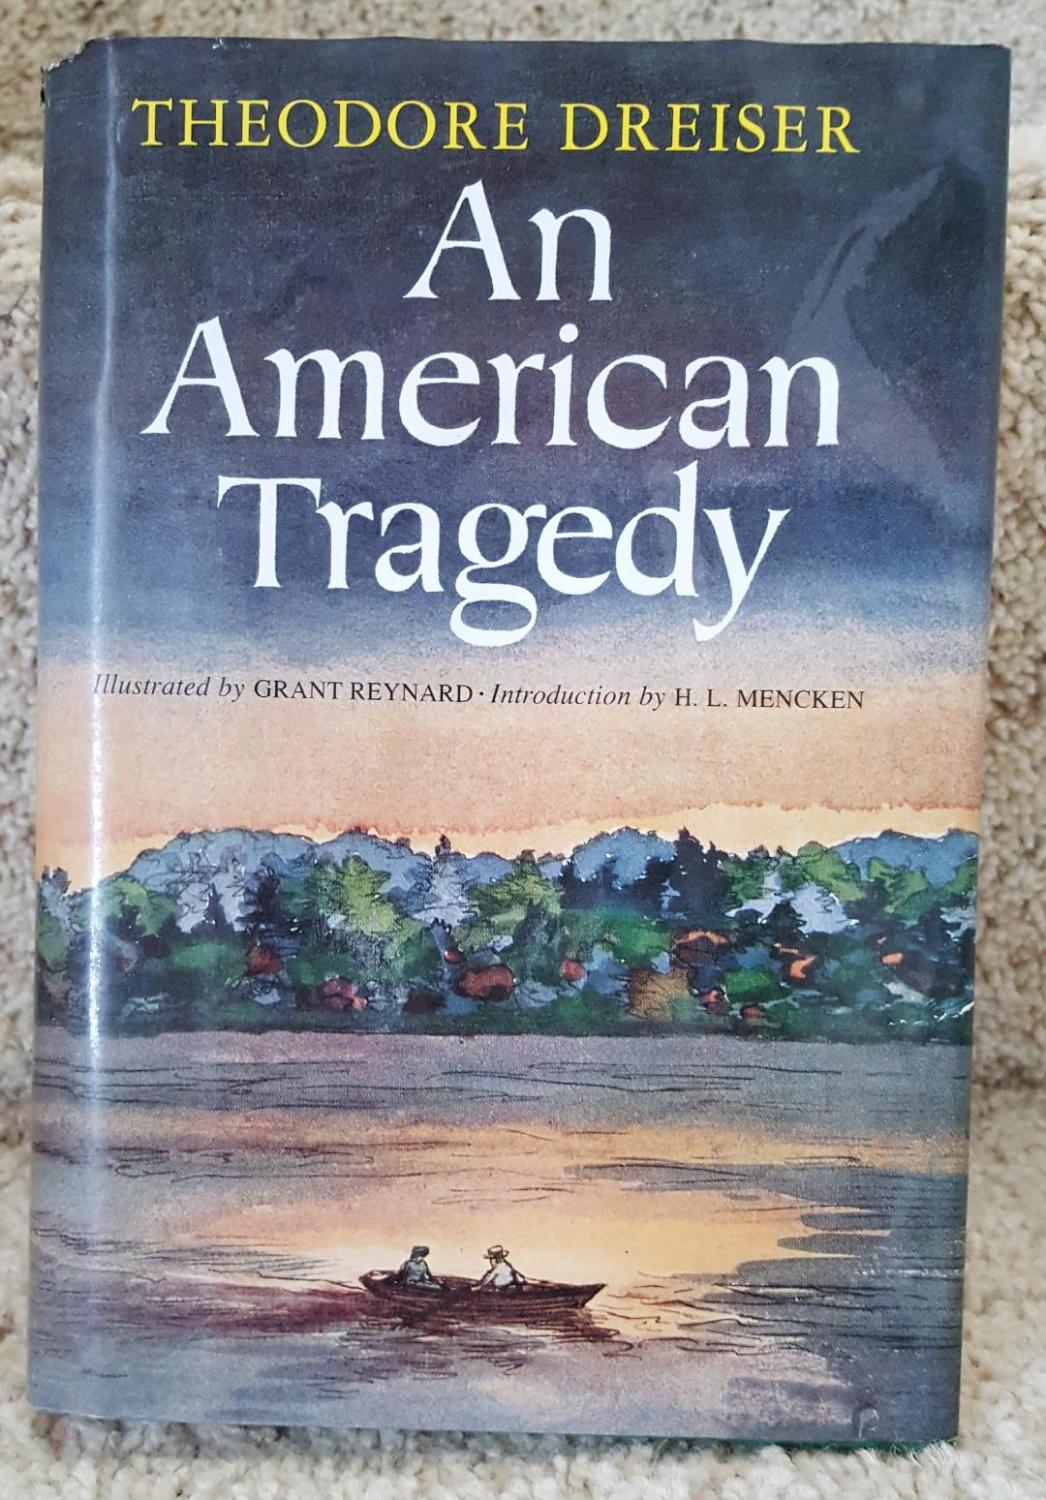 an analysis of the many aspects of theodore dreisers an american tragedy A term paper on theodore dreiser's an american tragedy the quest for many aspects of of dreiser's novel an american tragedy is the story of.